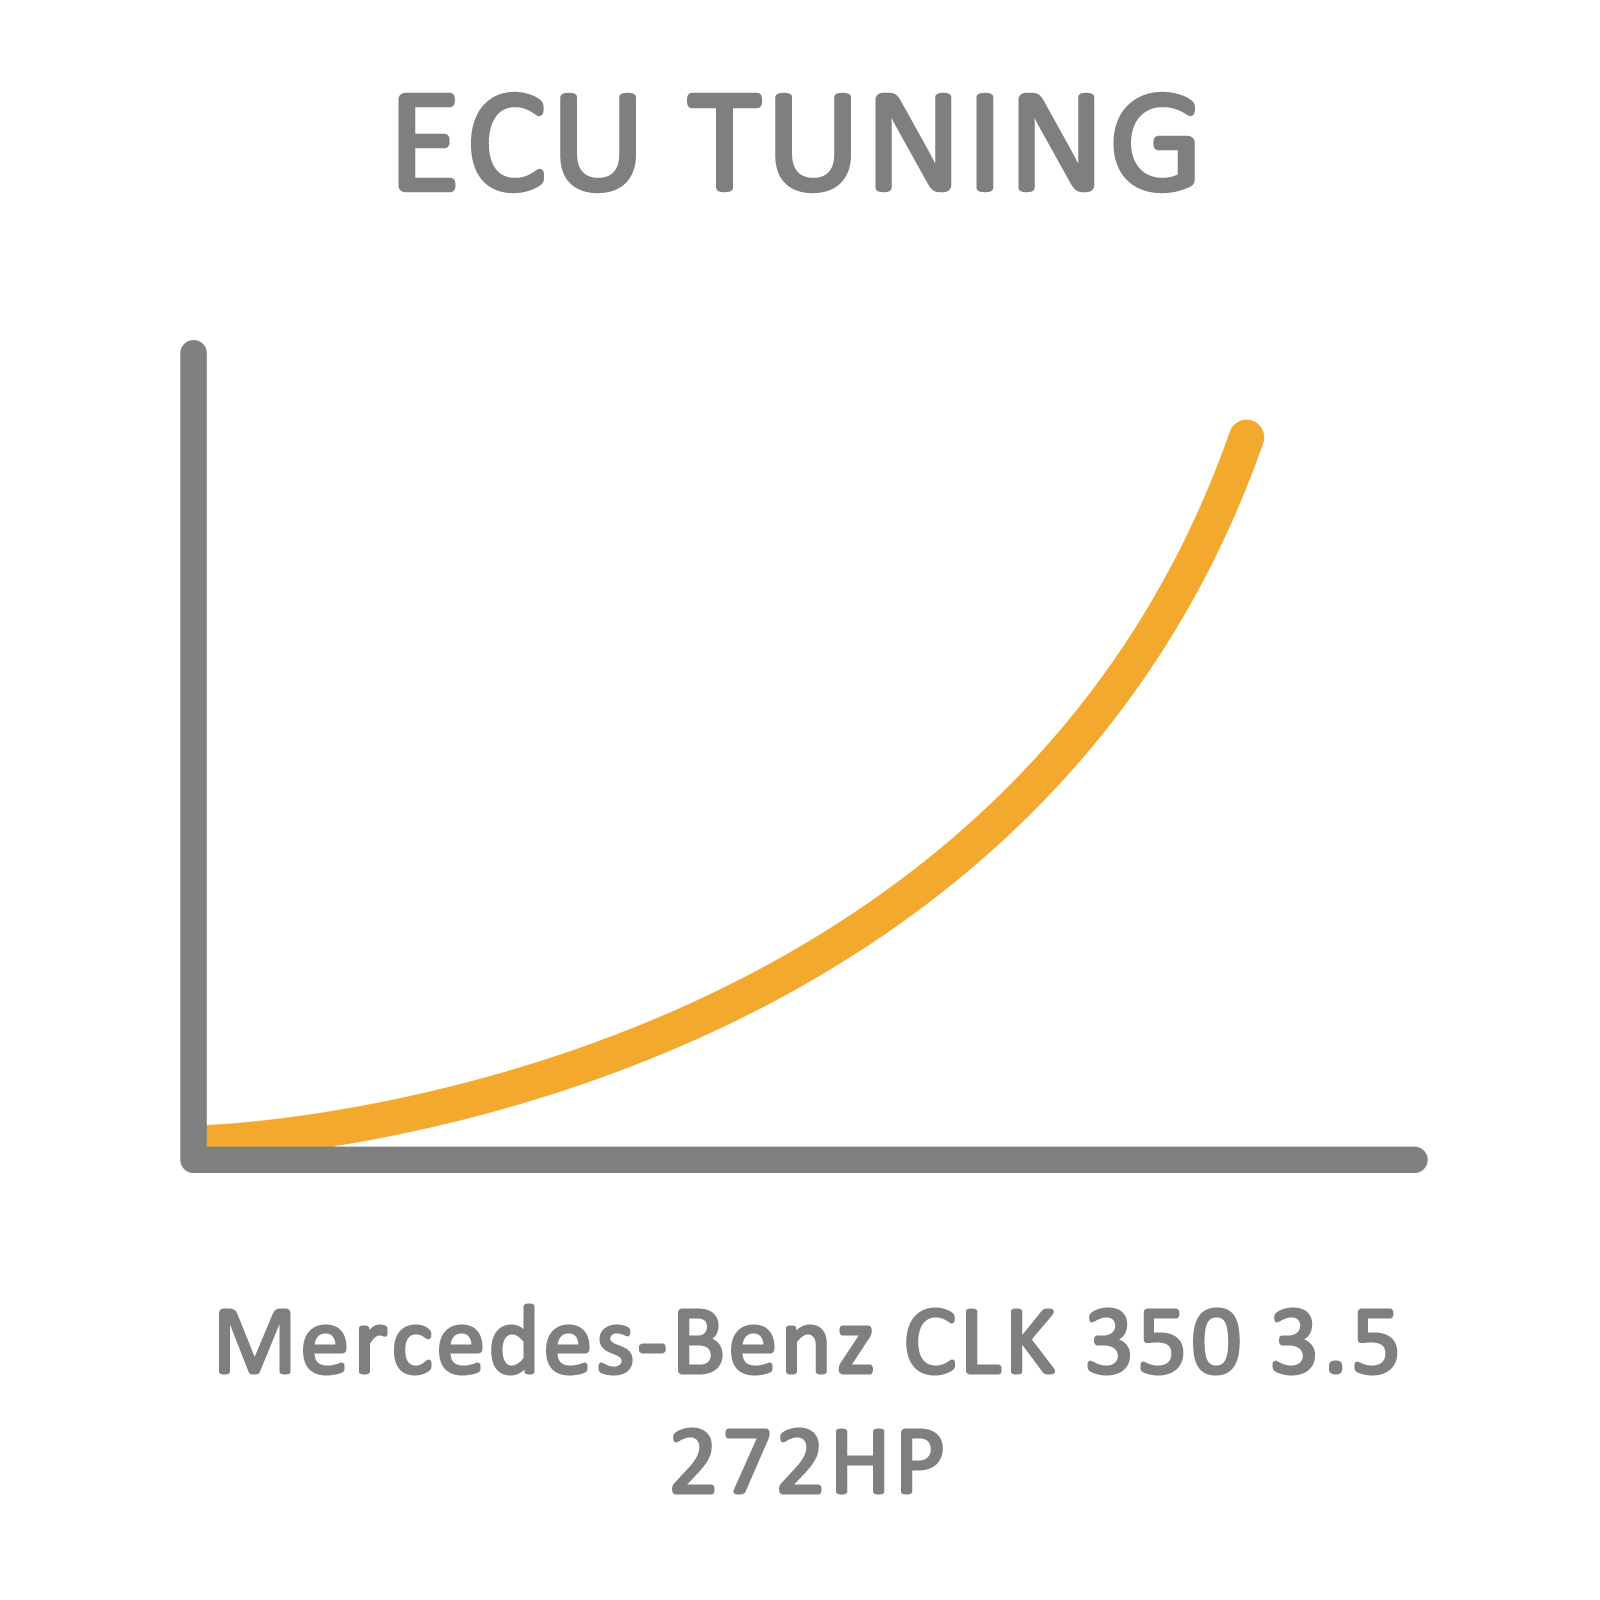 Mercedes-Benz CLK 350 3.5 272HP ECU Tuning Remapping